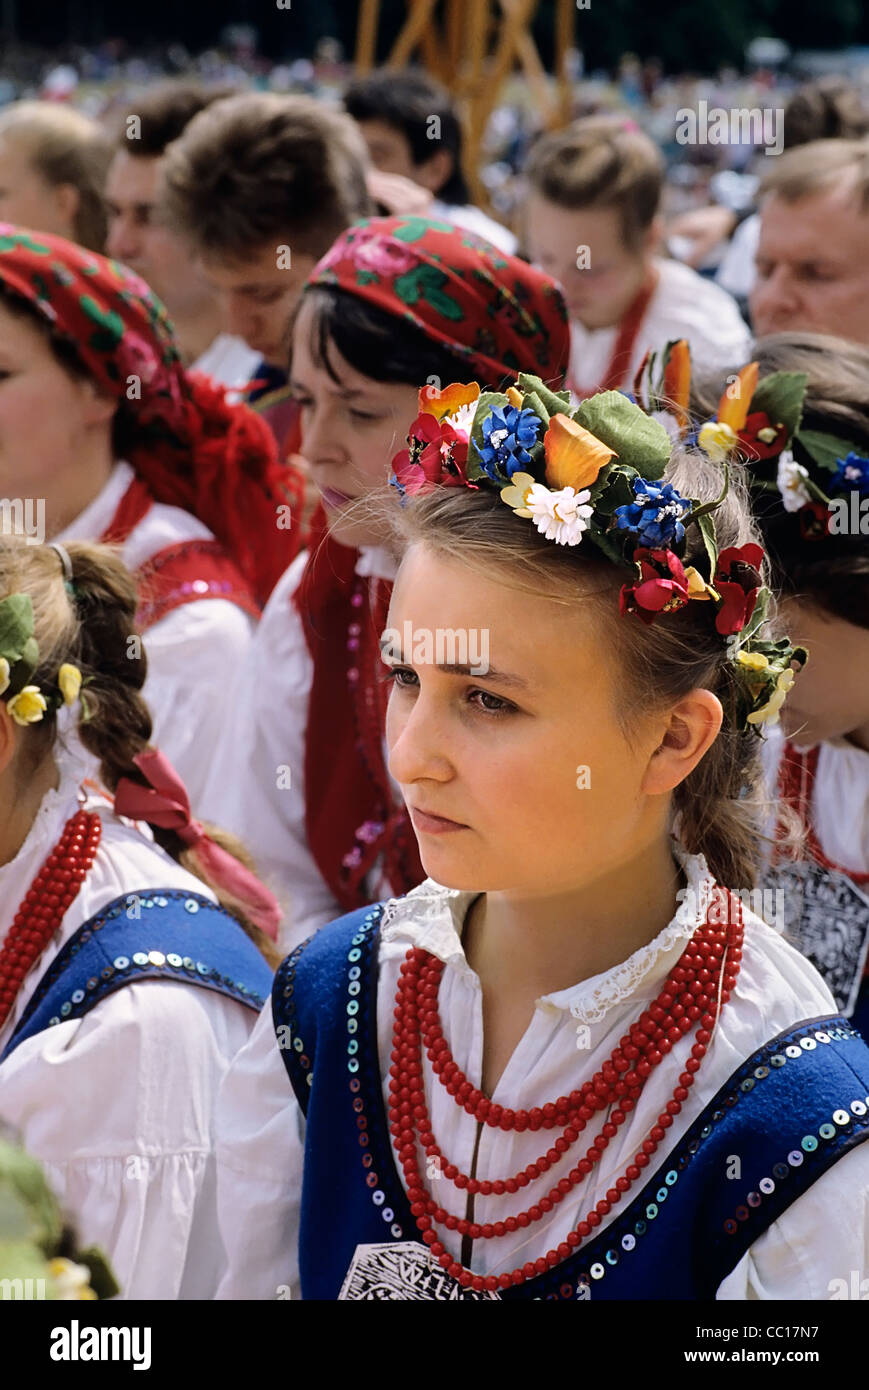 Girl a typical polish like does what look Top